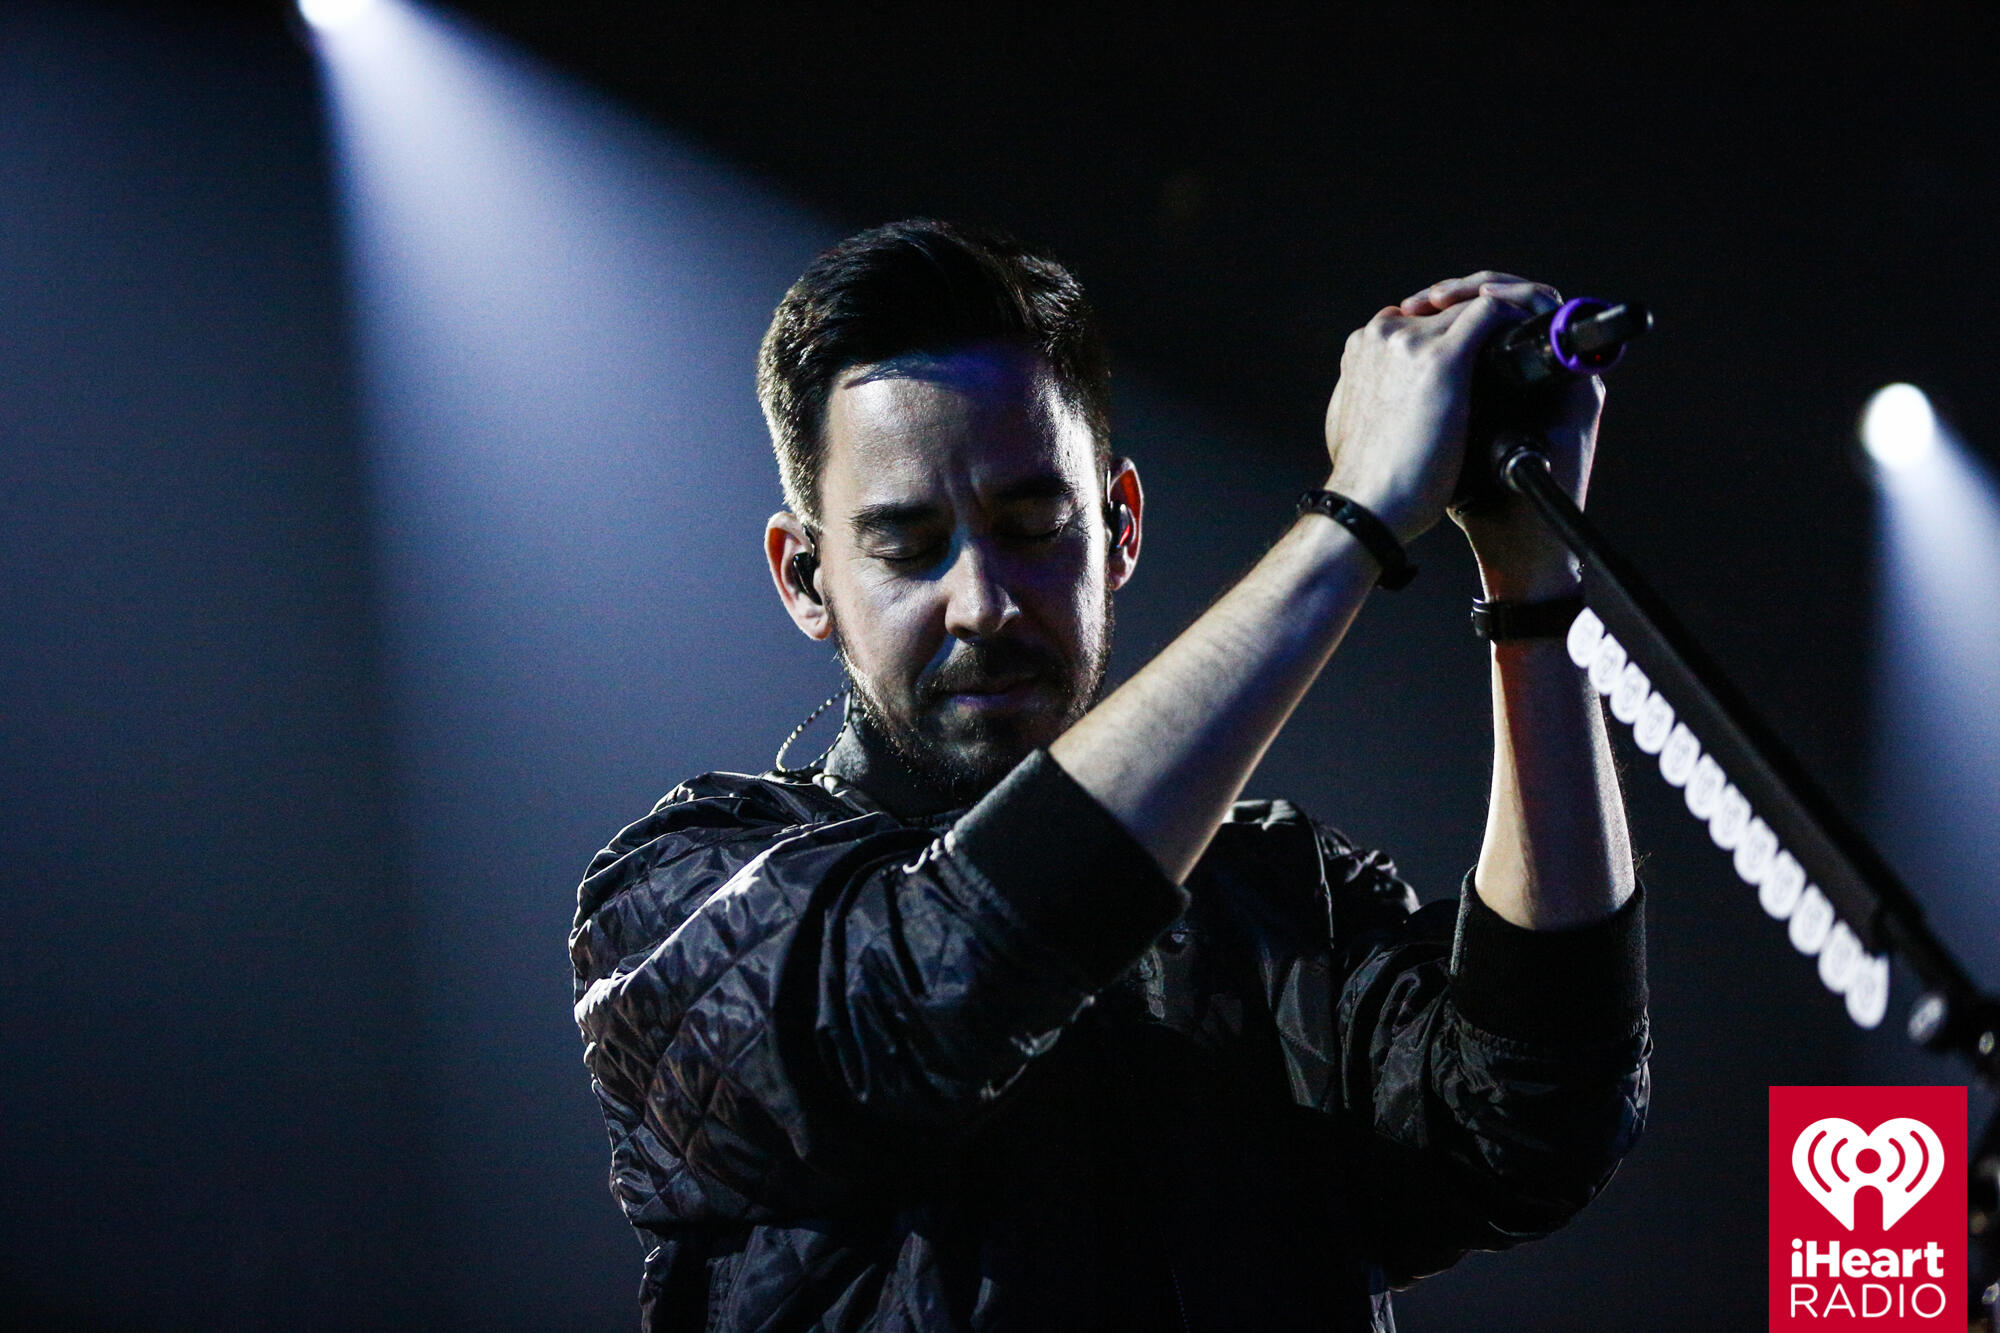 BURBANK, CA - MAY 22:  Mike Shinoda of Linkin Park performs on stage at the iHeartRadio Album Release Party presented by State Farm at the iHeartRadio Theater Los Angeles on May 22, 2017 in Burbank, California.  (Photo by Rich Fury/Getty Images for